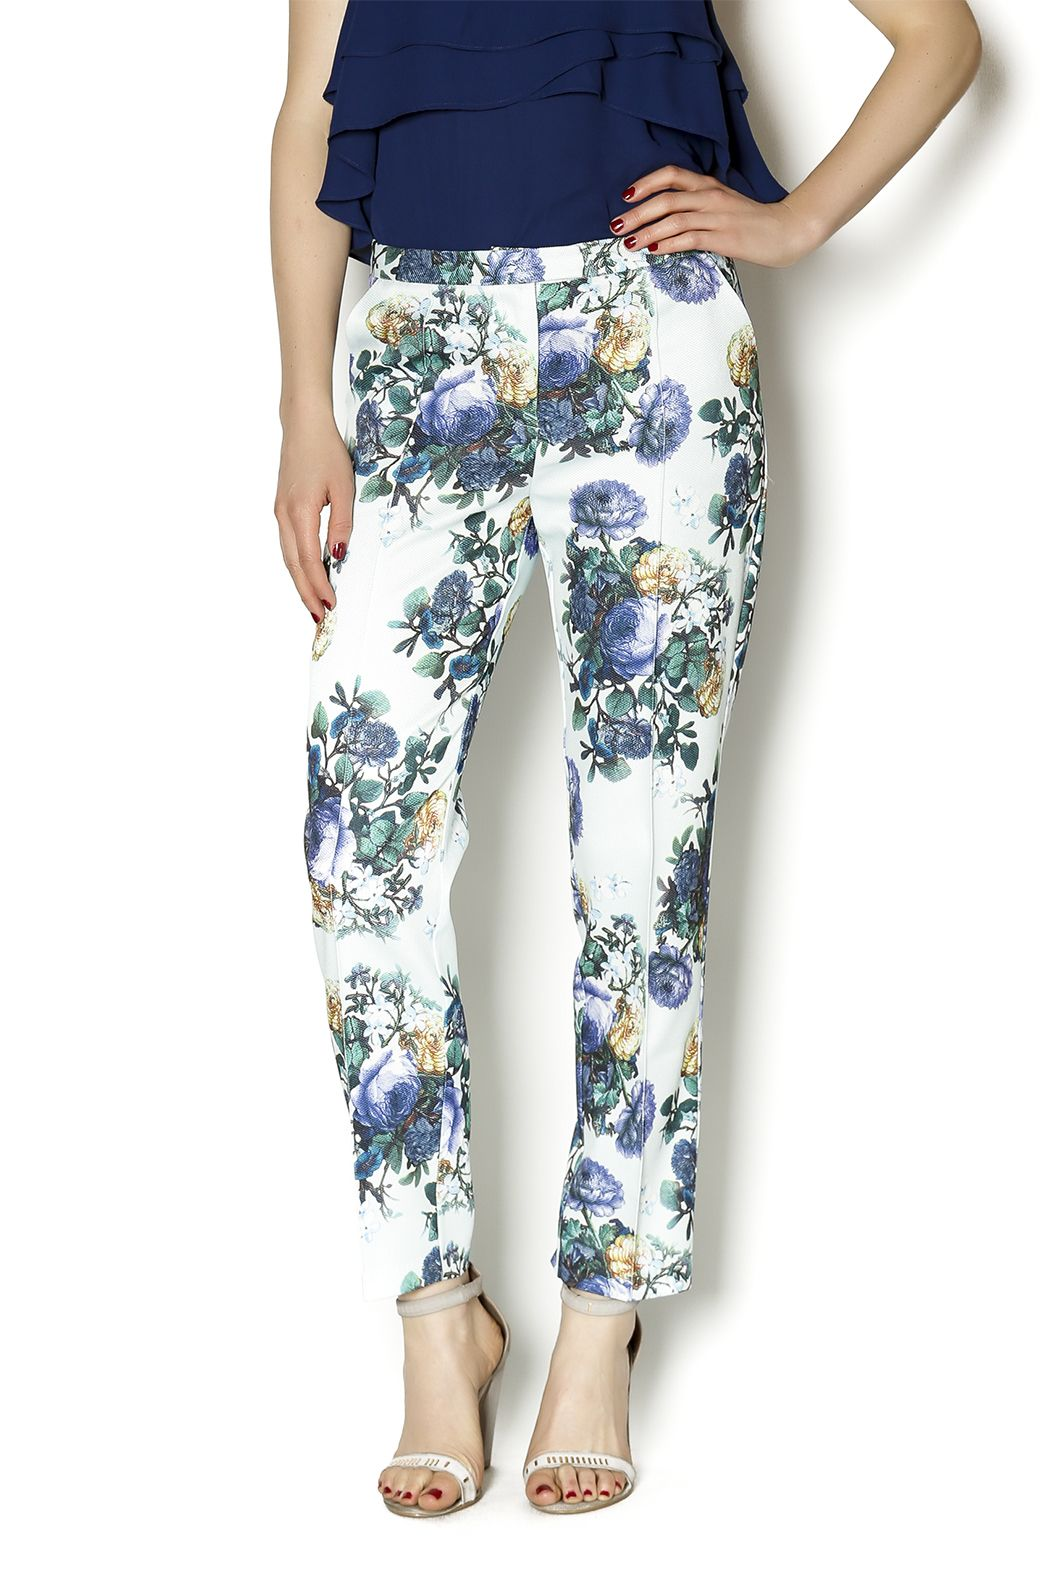 Floral ankle pants with front lining and pockets. Perfect for weekend brunches. Pair with a layered loose tank and heels.    Floral Ankle Pants by Darling. Clothing - Bottoms - Pants & Leggings - Slim San Francisco